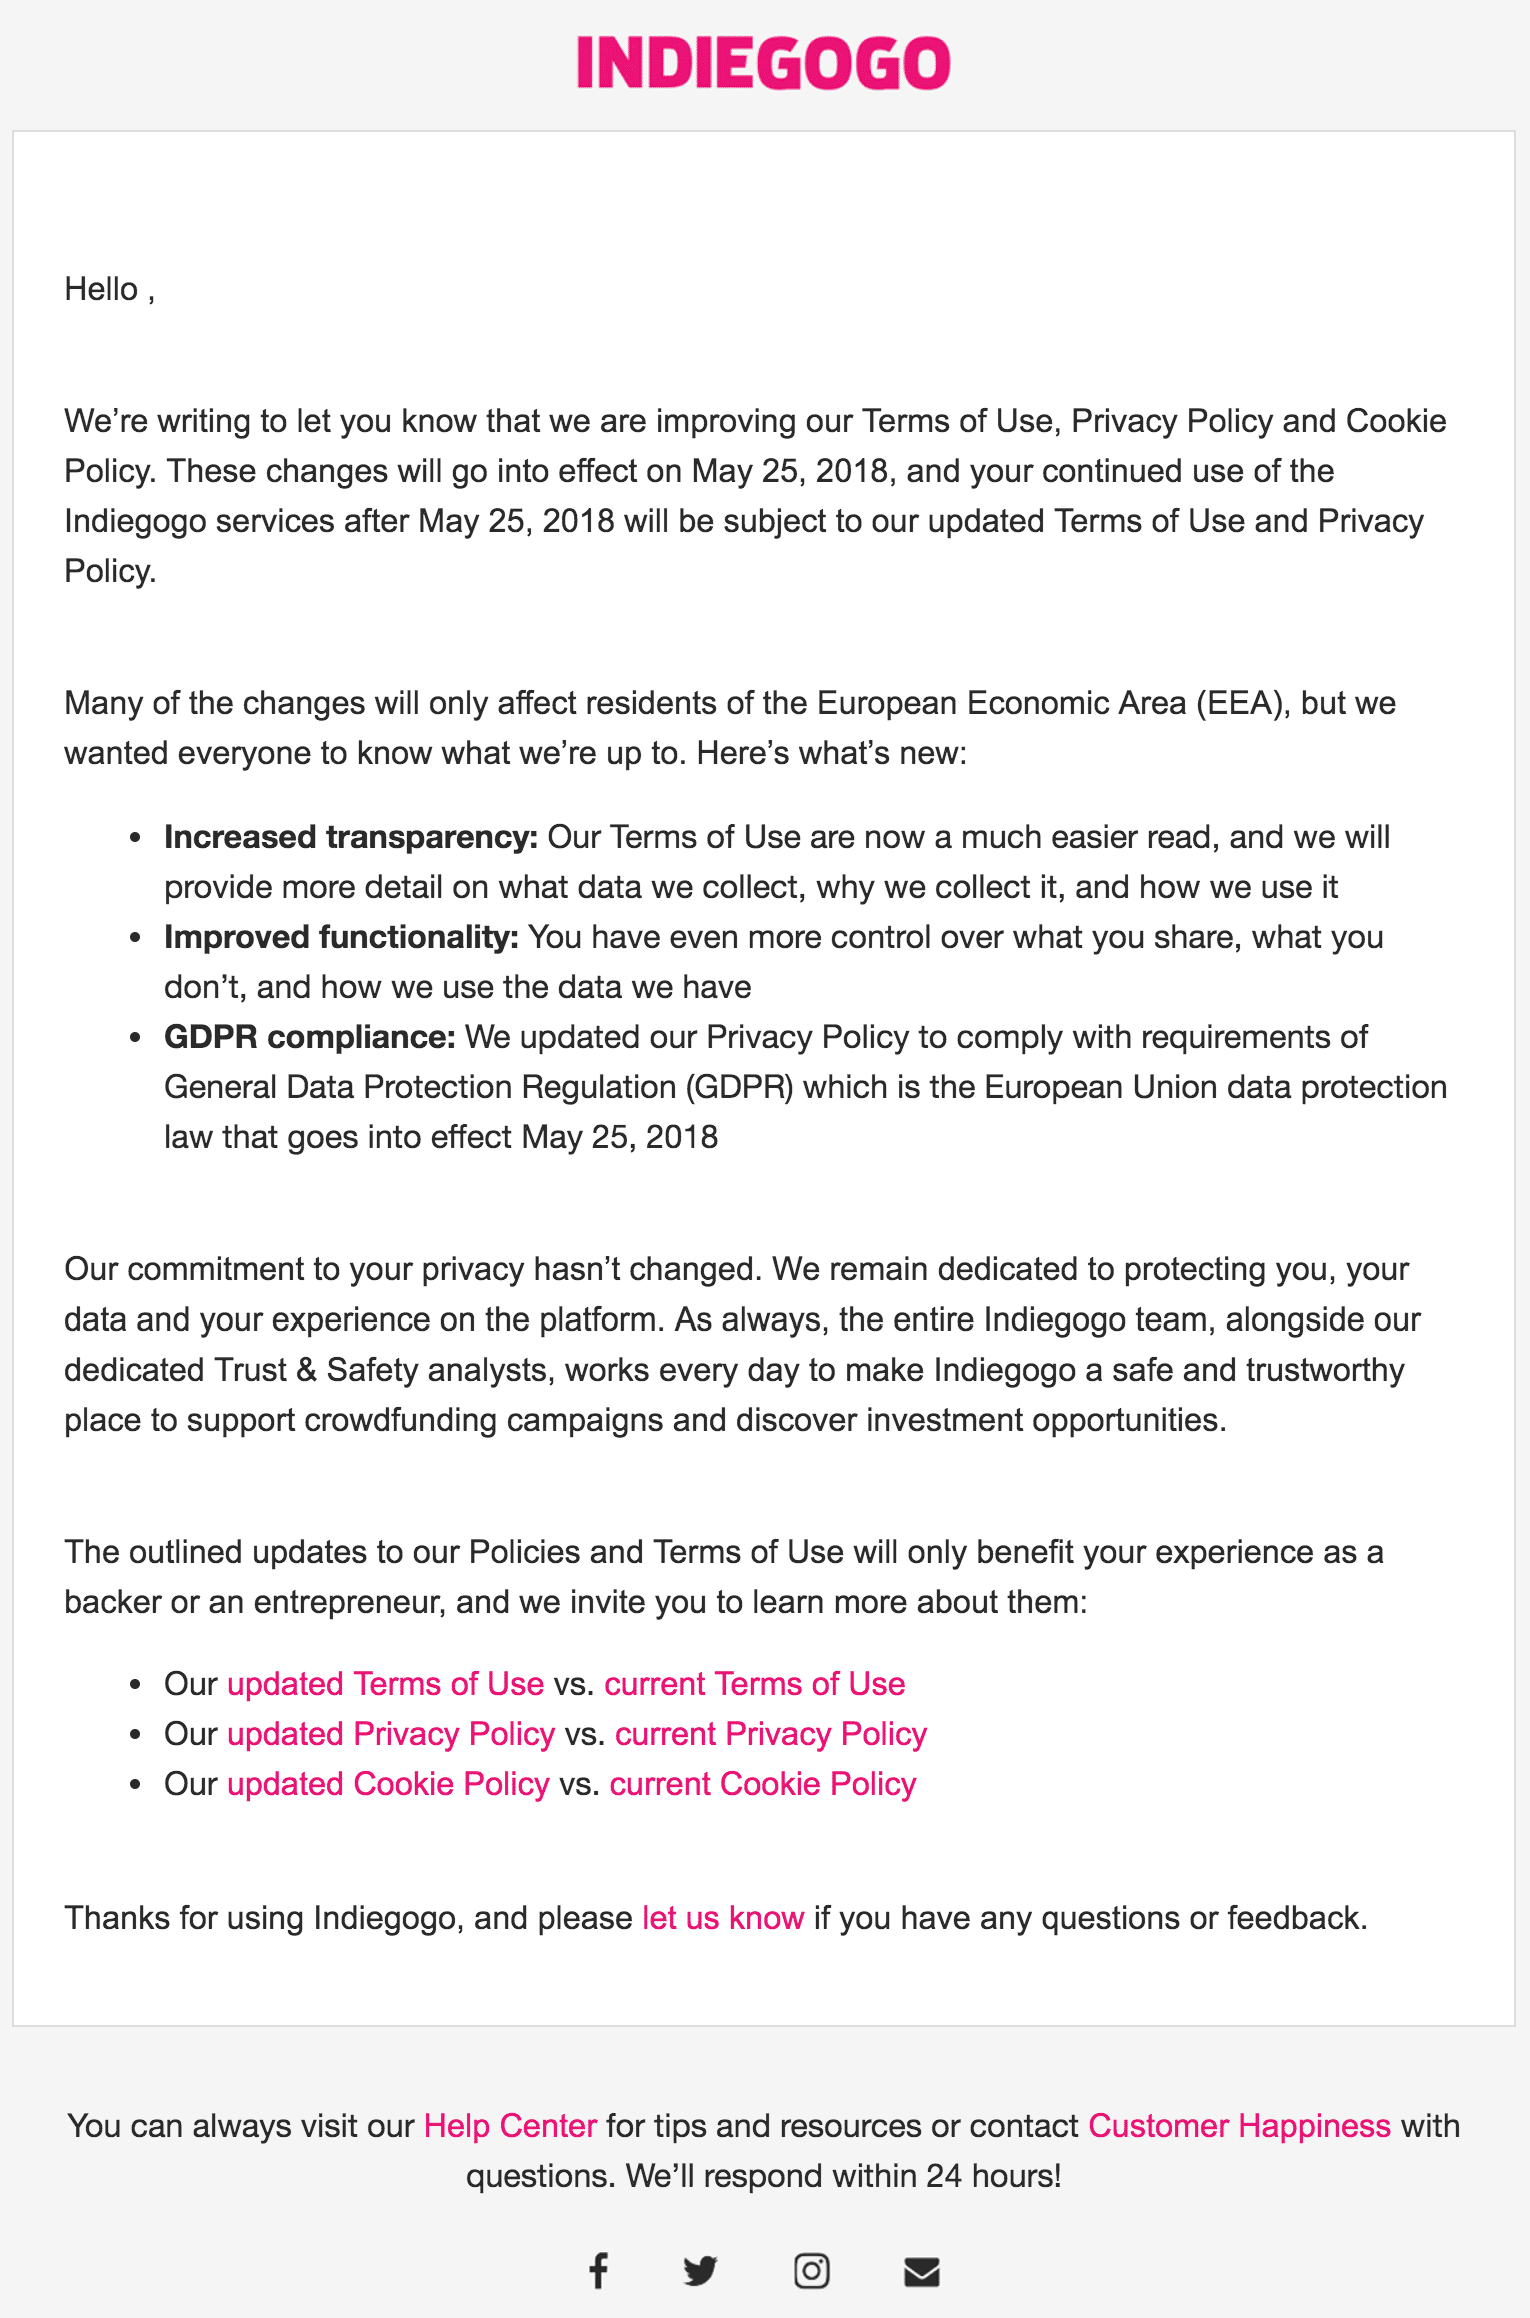 Indiegogo Updated Terms of Use and Privacy Policy email example - Examples of Updated Privacy notice Emails